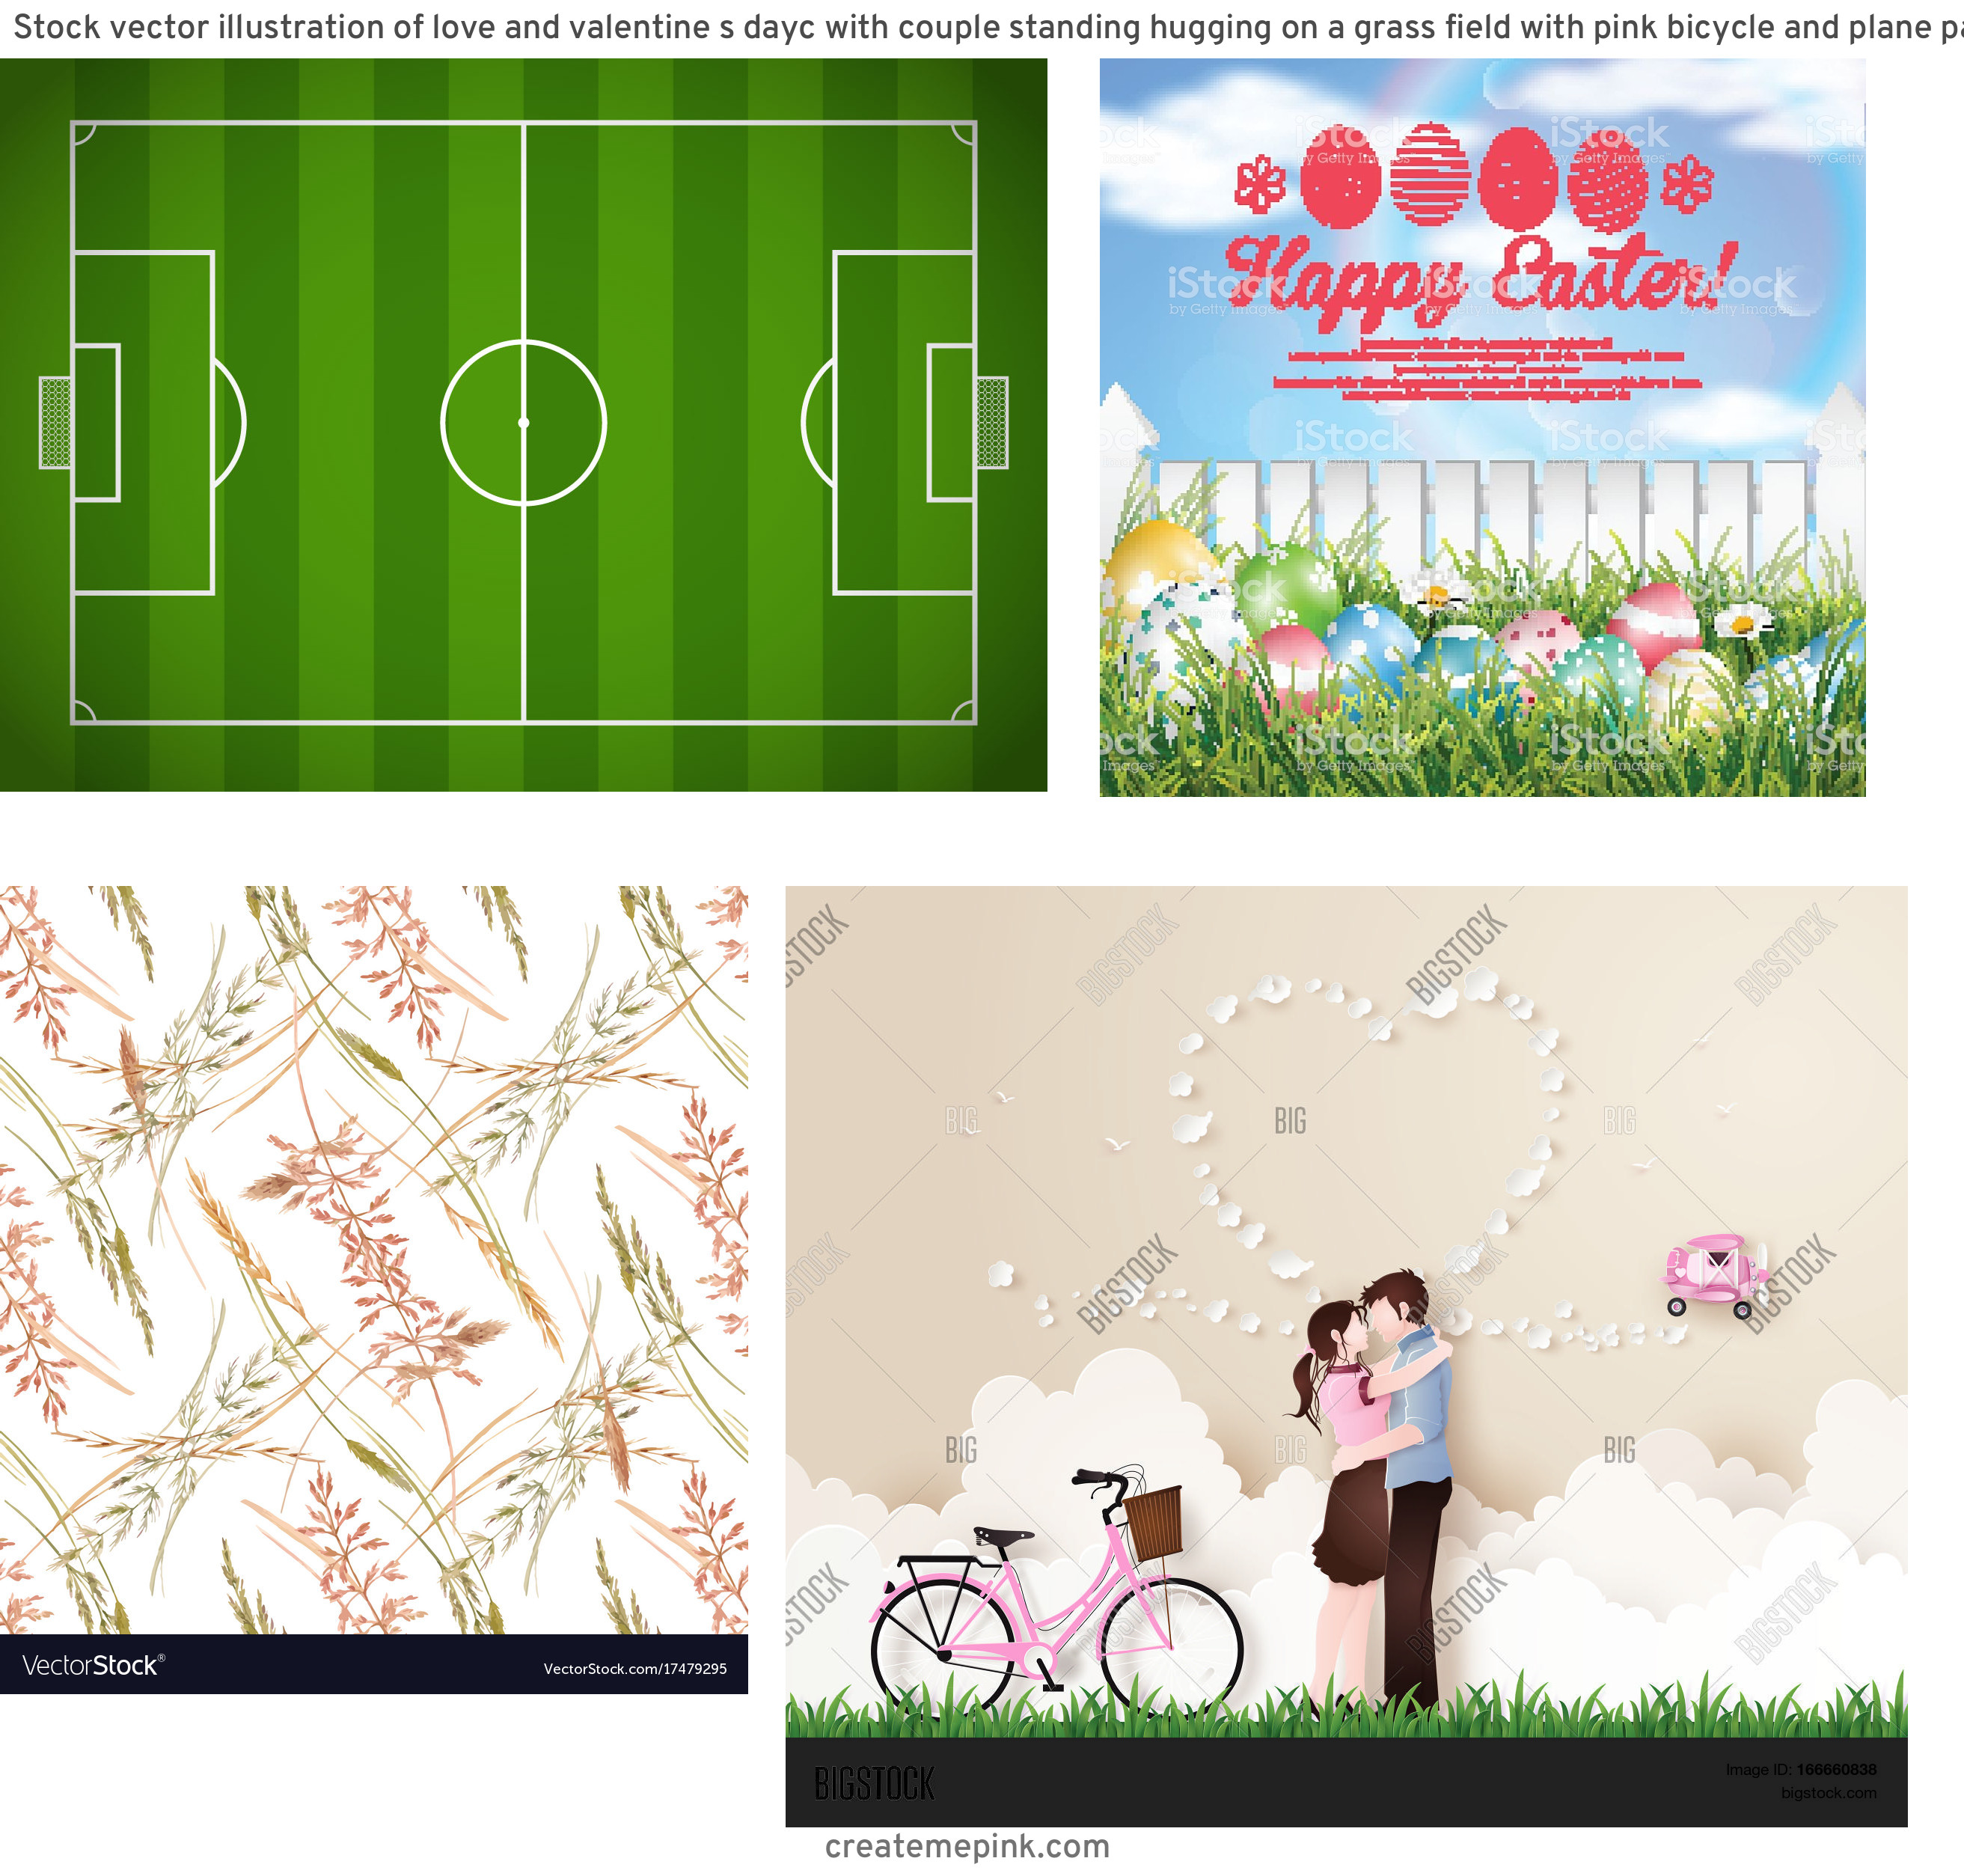 Vector Art Grass Field: Stock Vector Illustration Of Love And Valentine S Dayc With Couple Standing Hugging On A Grass Field With Pink Bicycle And Plane Paper Art Style